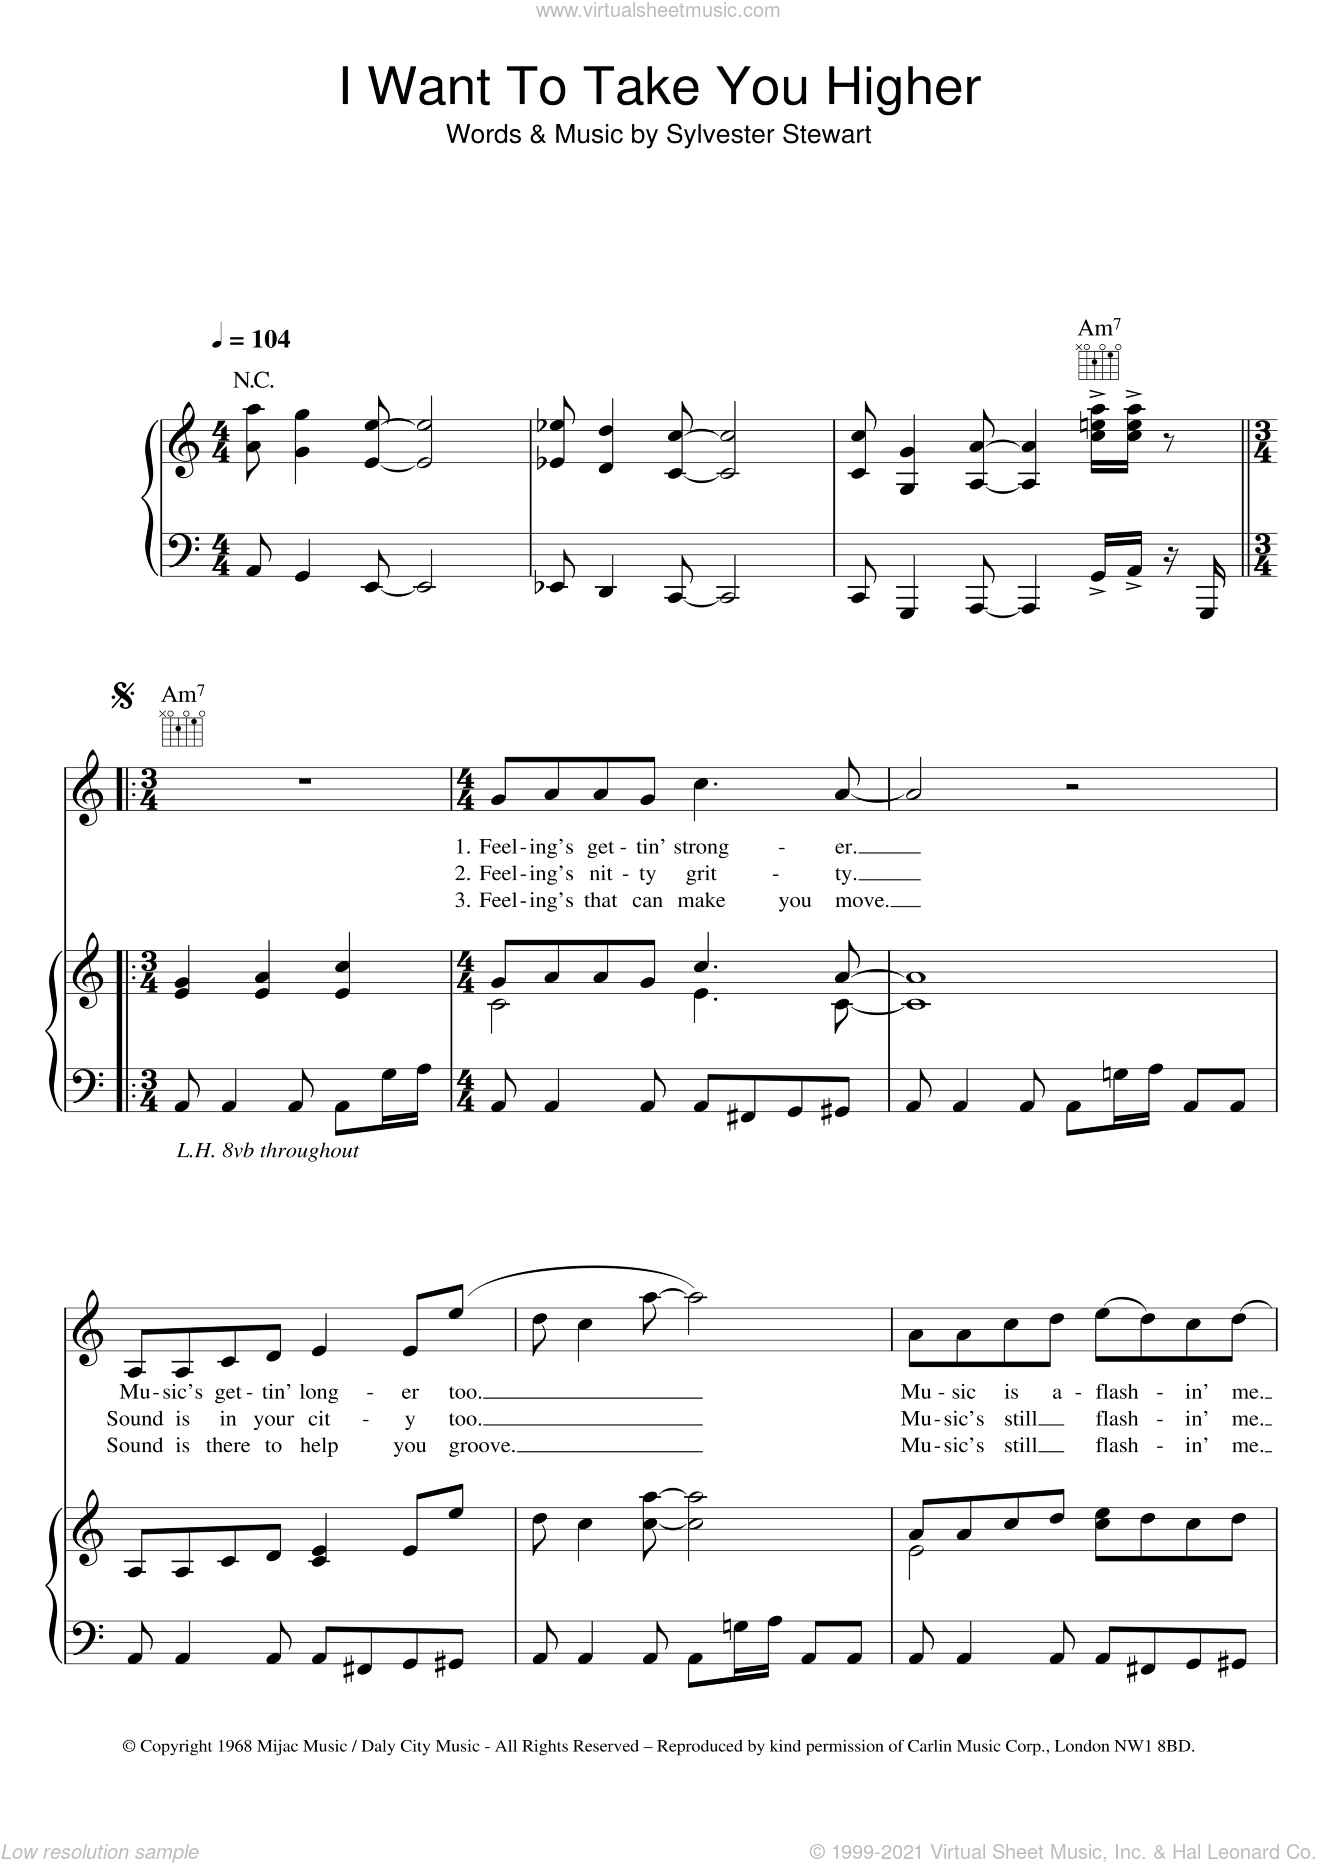 I Want To Take You Higher sheet music for voice, piano or guitar by Sly And The Family Stone, The Commitments and Sylvester Stewart, intermediate